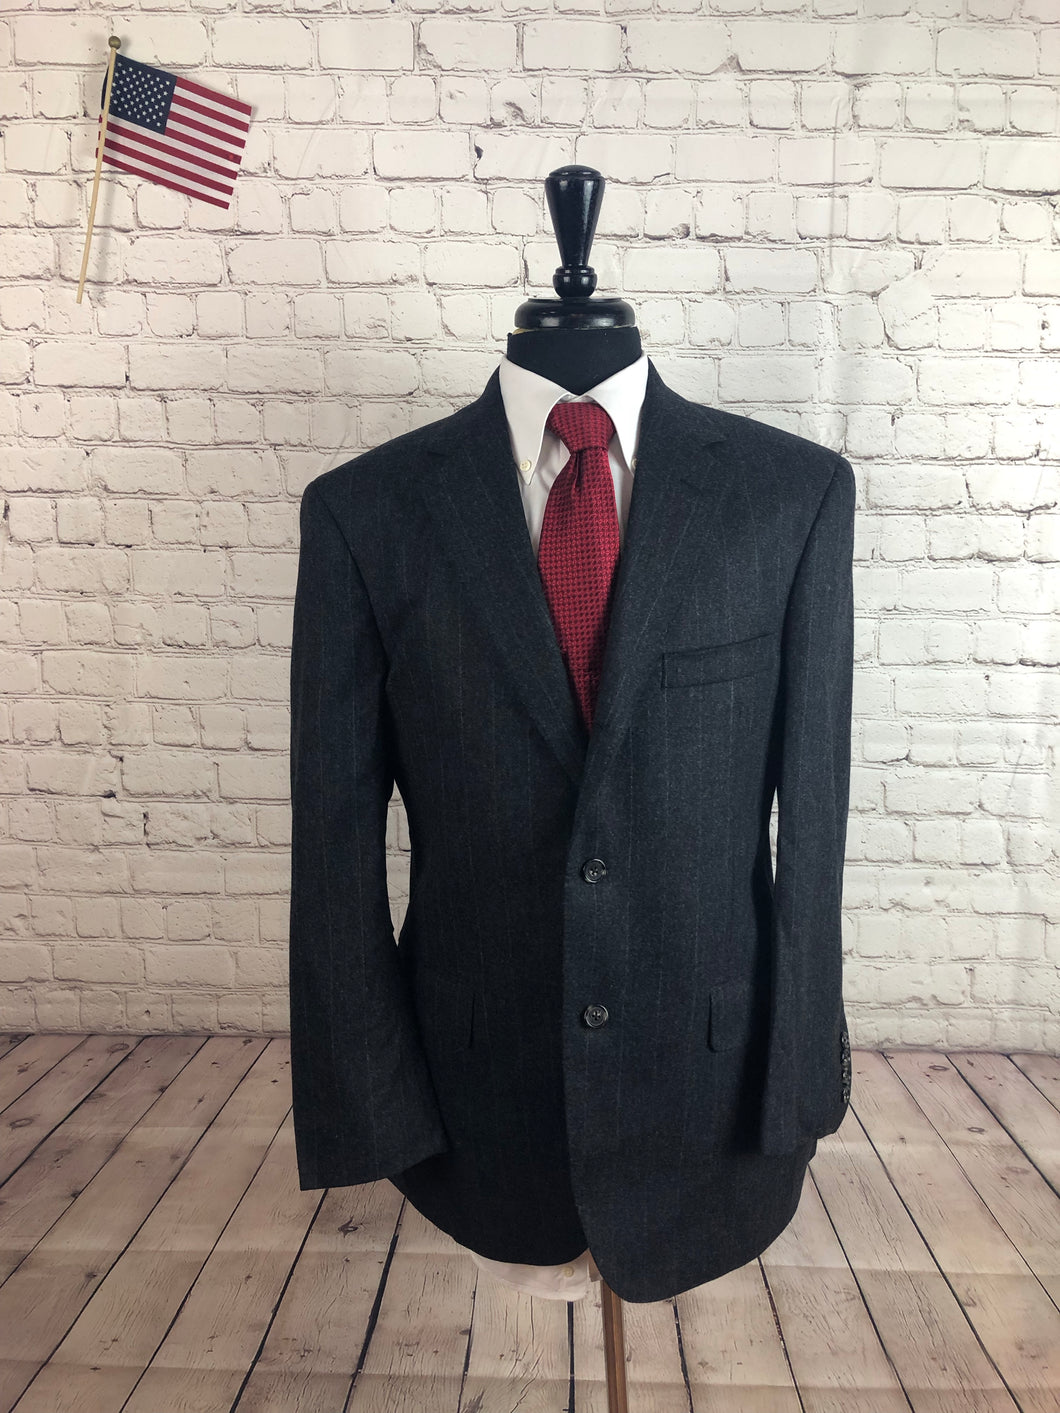 Southwick Men's Gray Stripe Wool Blazer Sport Coat Suit Jacket 40R $395 - SUIT CHARITY OUTLET